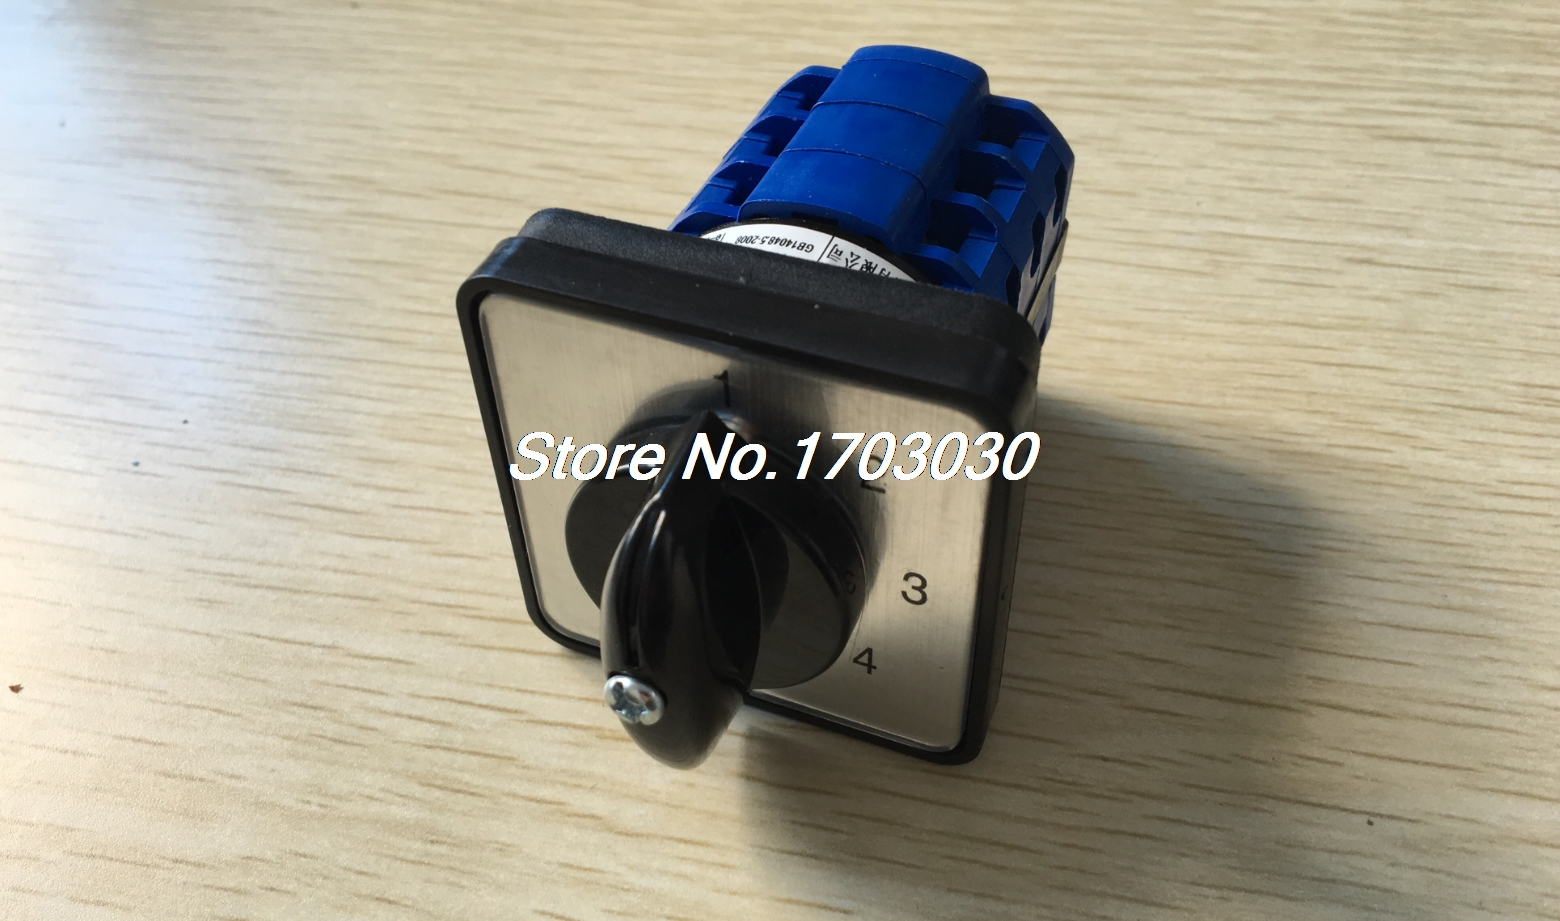 660V 16A 5 Position Panel Mounting Select Rotary Cam Changeover Switch ui 500v ith 16a 3 position changeover rotary cam switch w led indicator lamps